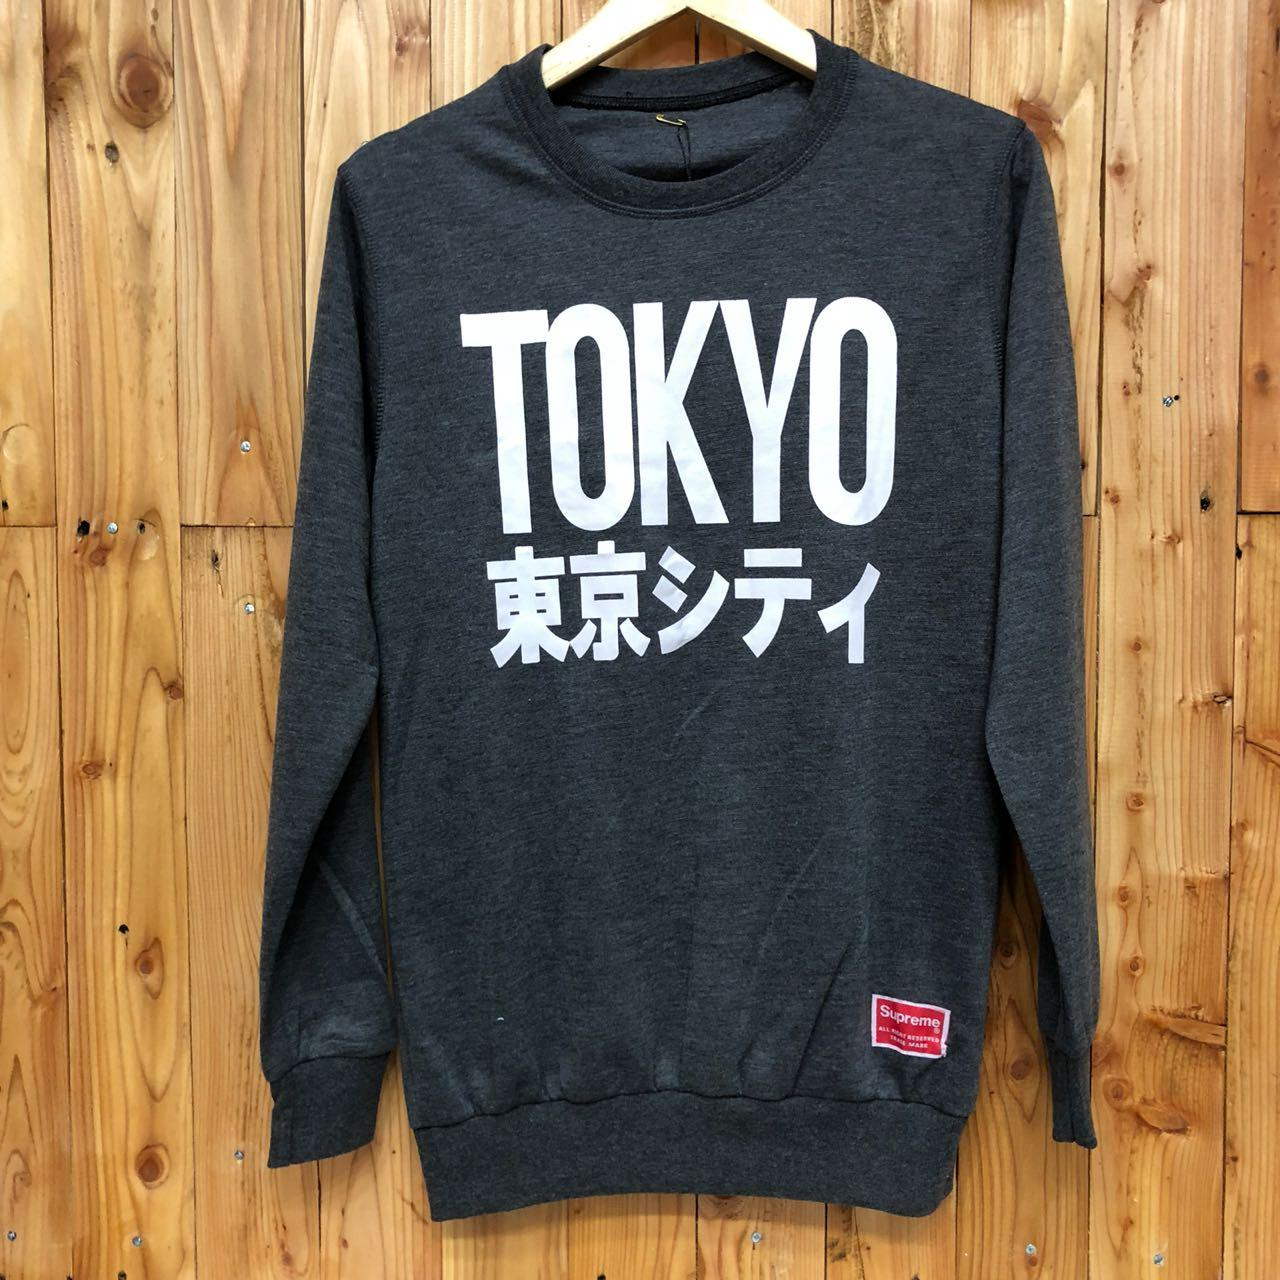 nia_fashion - Sweater Sweatshirt Basic Oblong Supreme Lengan Panjang Pria/Cowok/sweater distro ala korea/sweater tokyo/sweater terbaru/sweatet cewek cowok